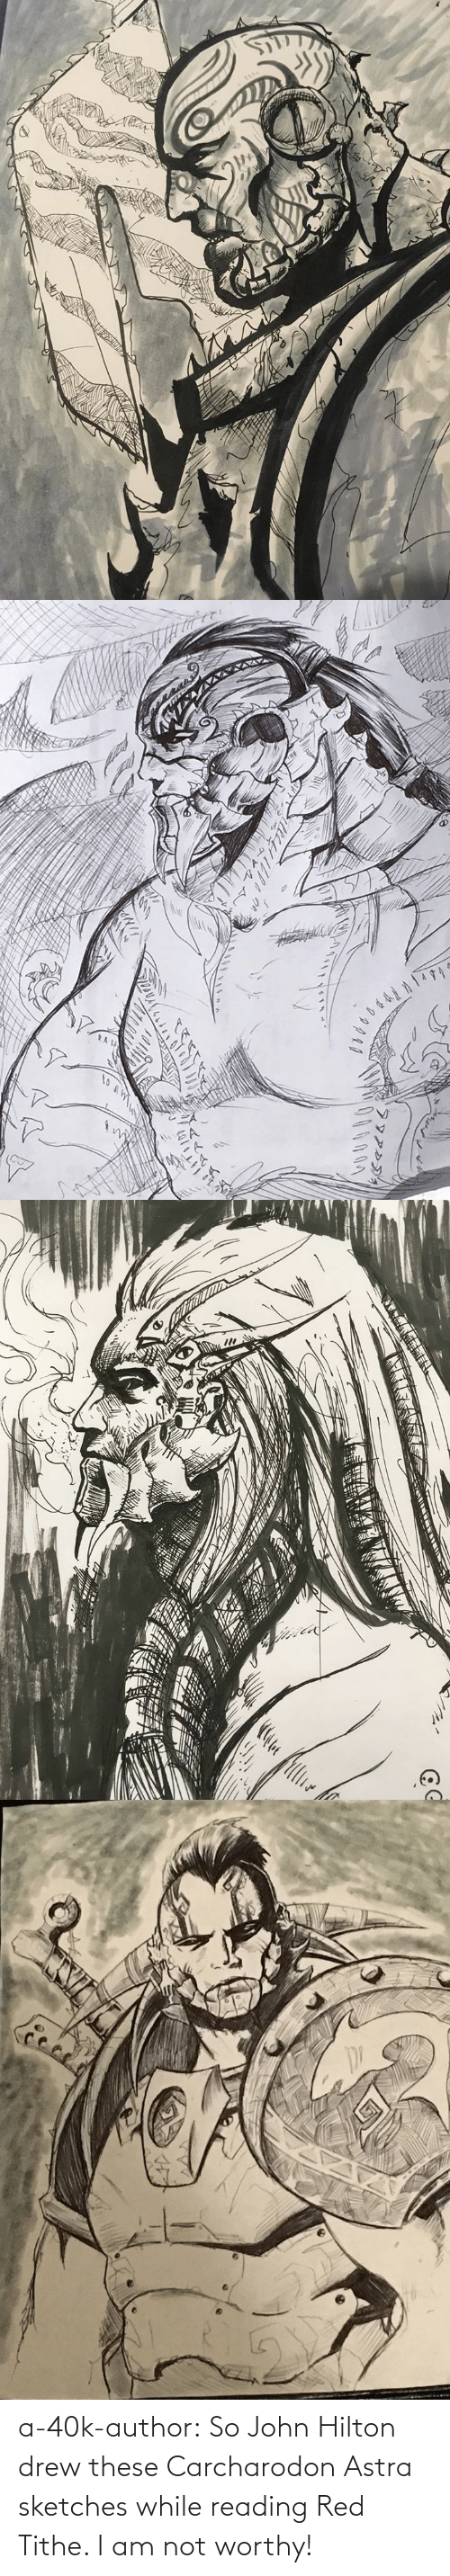 reading: a-40k-author:  So John Hilton drew these Carcharodon Astra sketches while reading Red Tithe. I am not worthy!